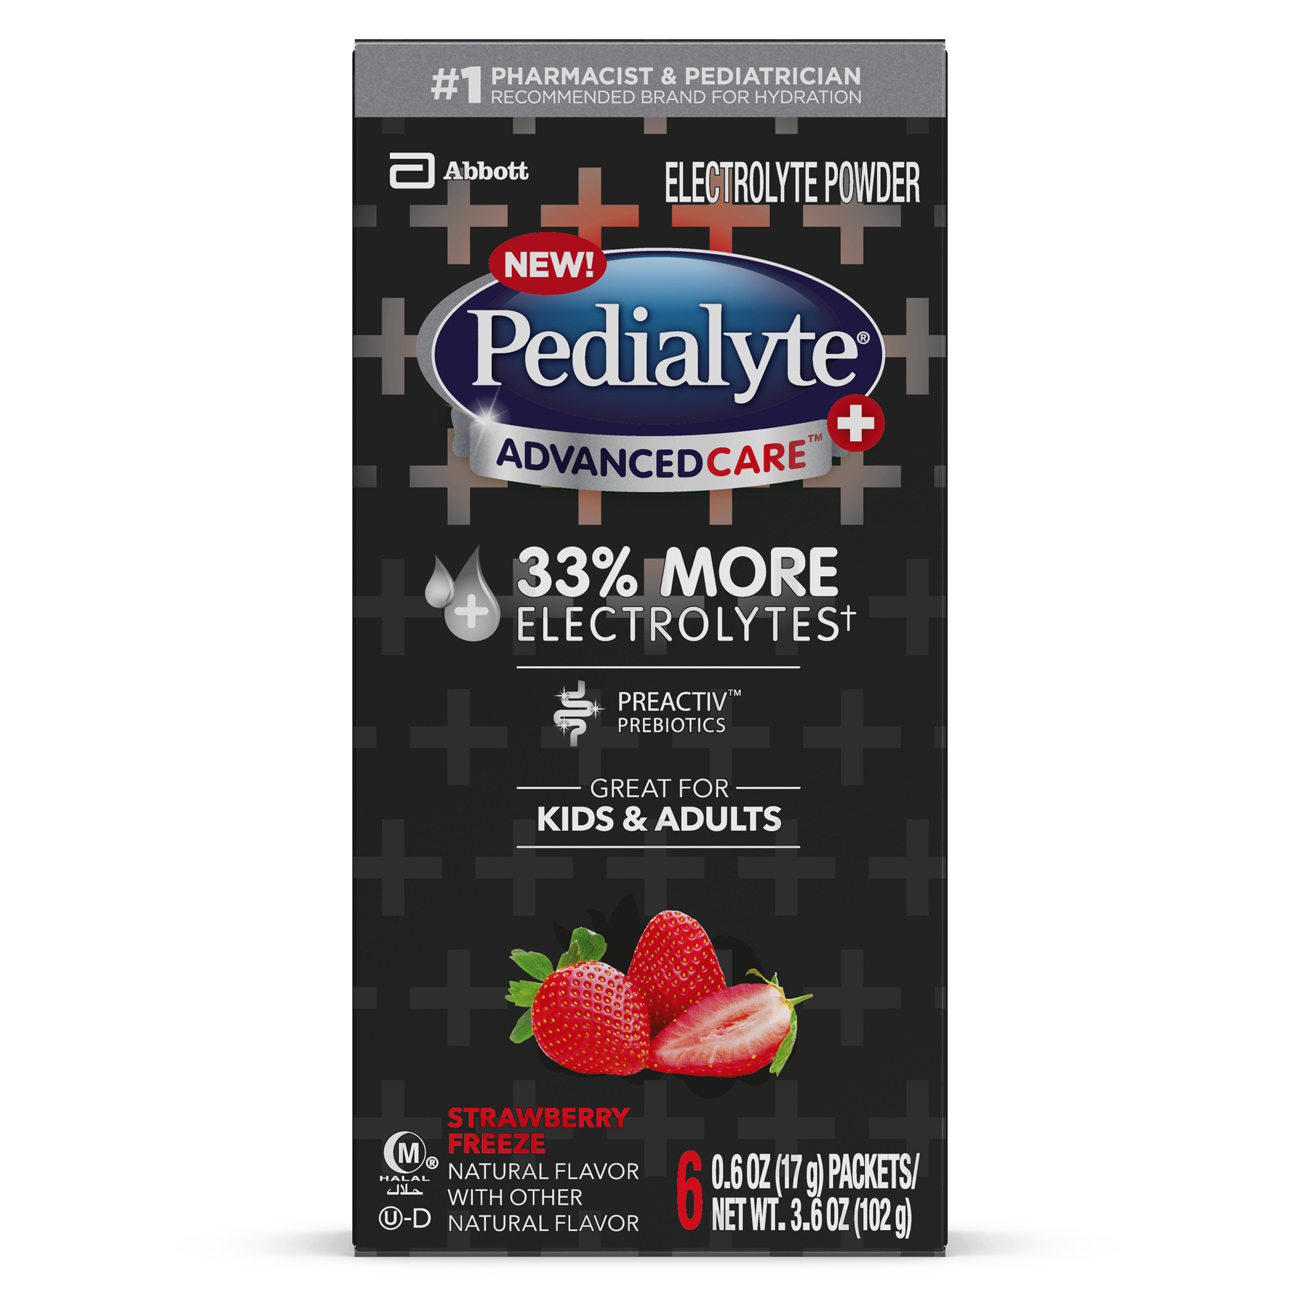 Pedialyte AdvancedCare Plus Electrolyte Powder Strawberry Freeze 0.6 oz Powder Packs (Pack of 6)